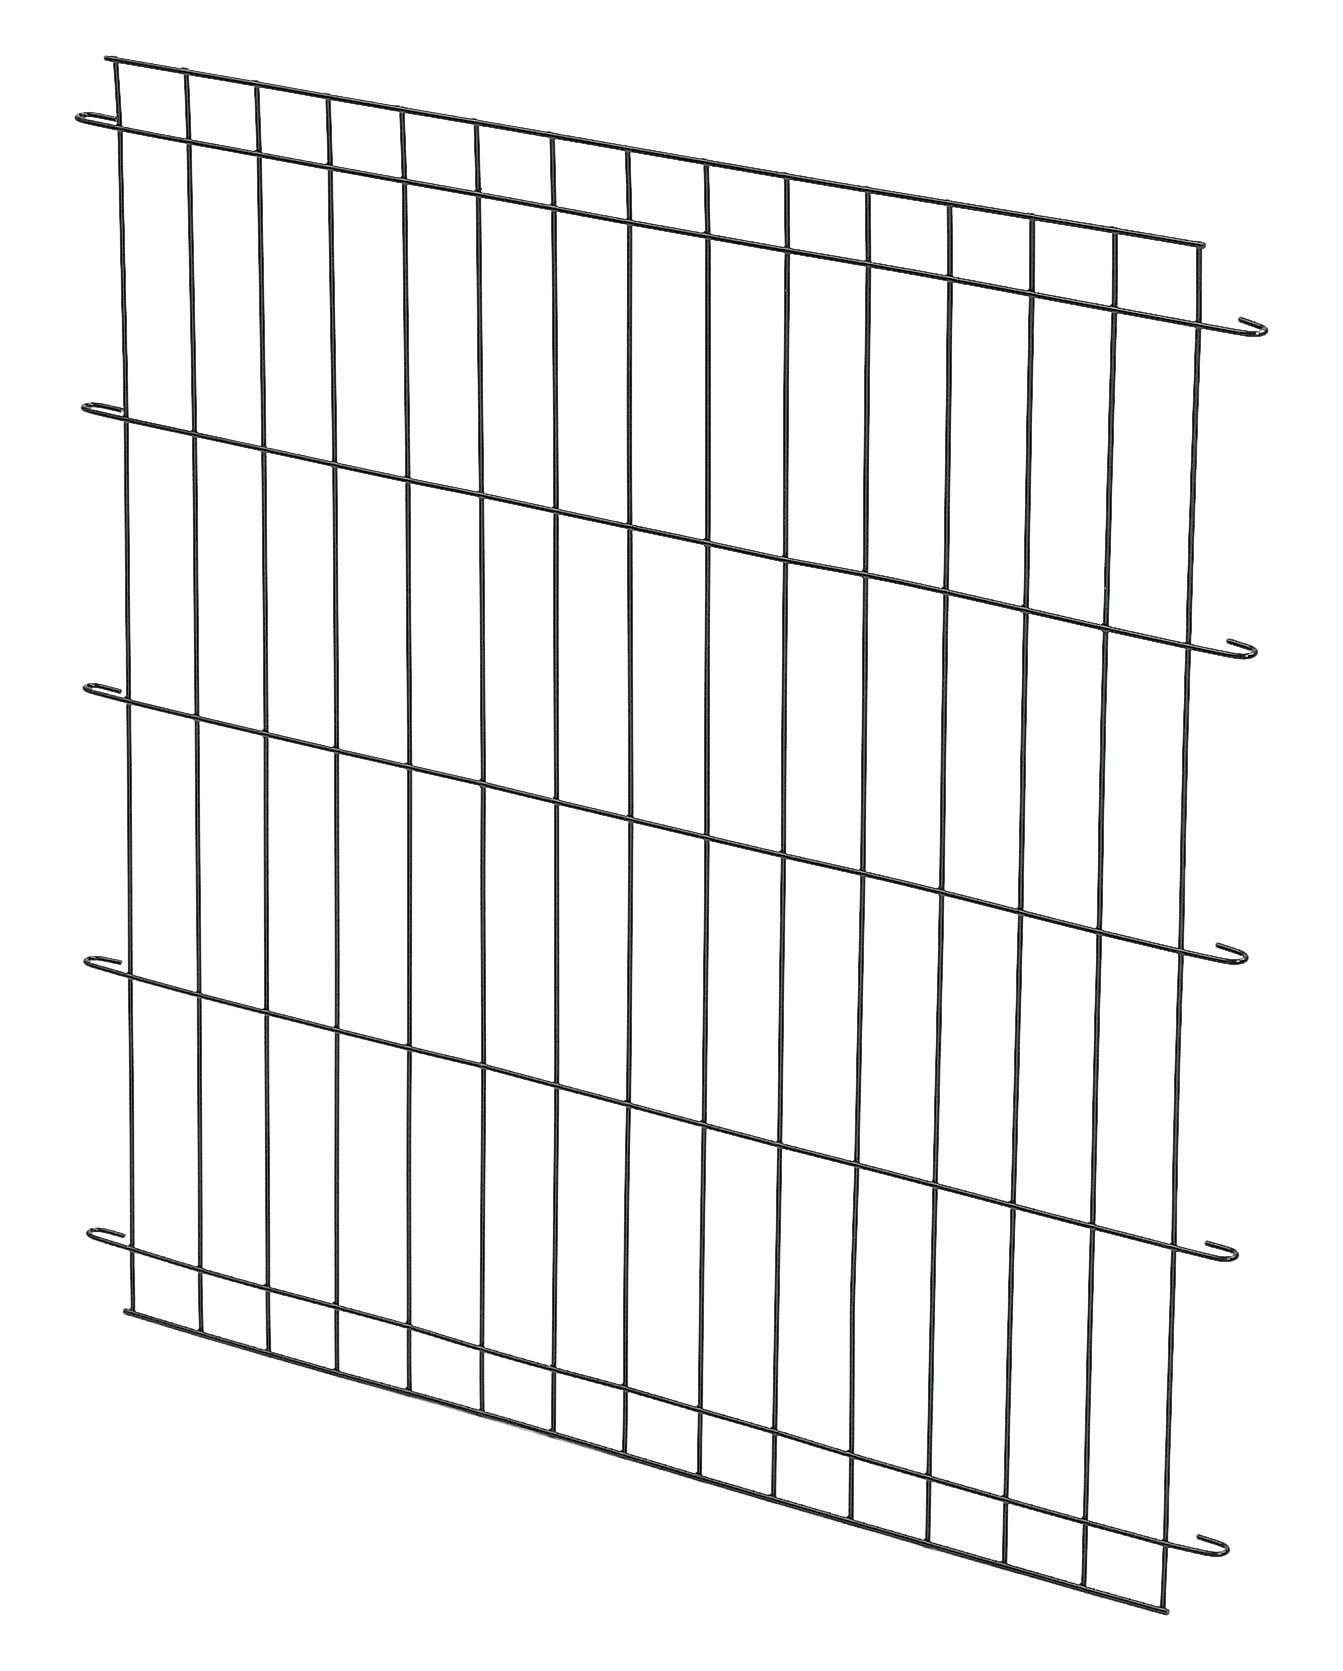 MidWest Homes for Pets Divider Panel Fits Models 708BK, 1242, 1342TD, 1542/DD and 1642/DD/UL